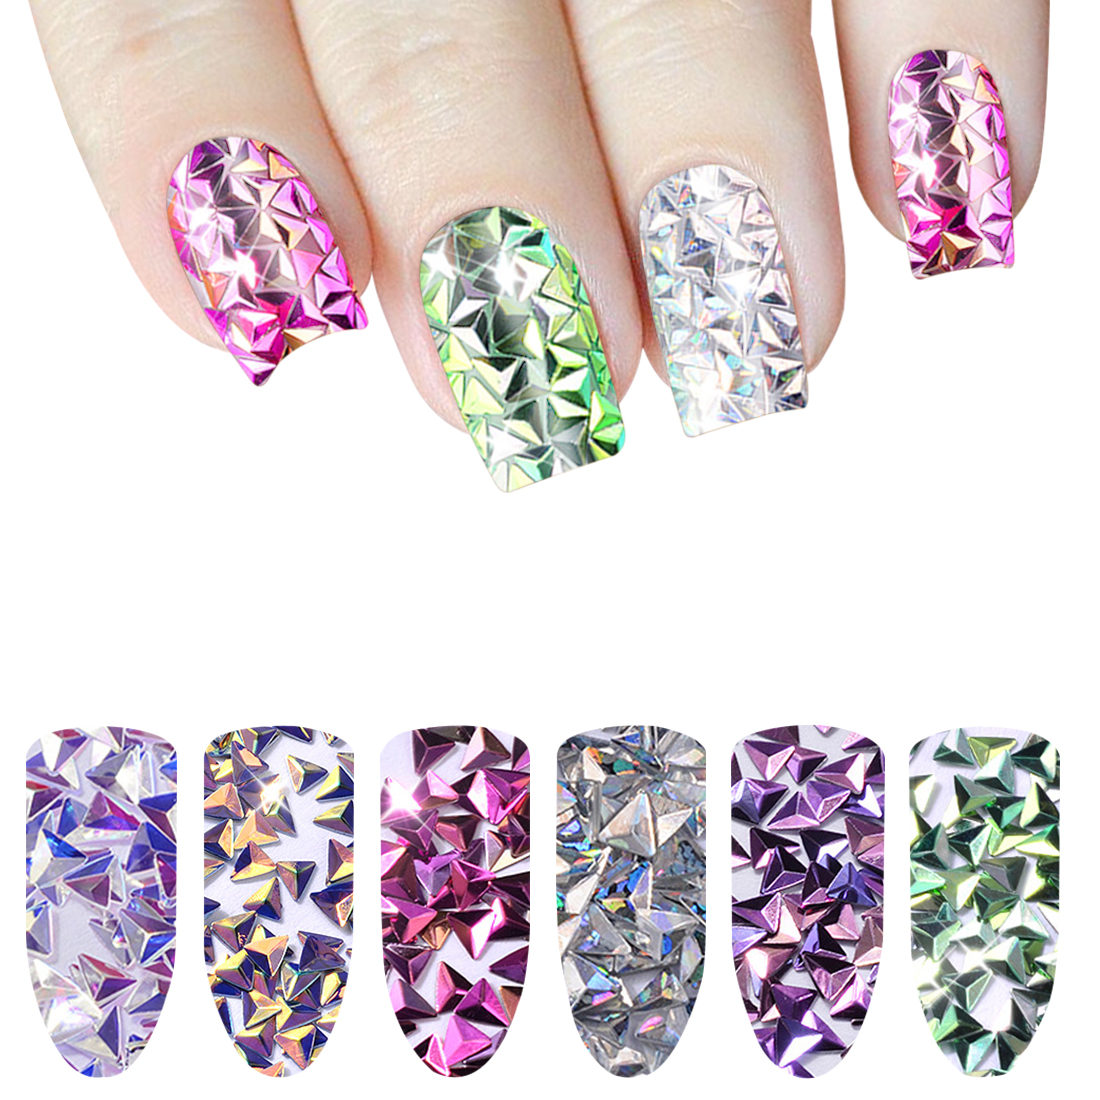 6 Boxes Laser Silver Nail Glitter Sequins Dust Mixed Rhombus Shape Tips DIY Charm Polish Flakes Decorations Manicure in Nail Glitter from Beauty Health